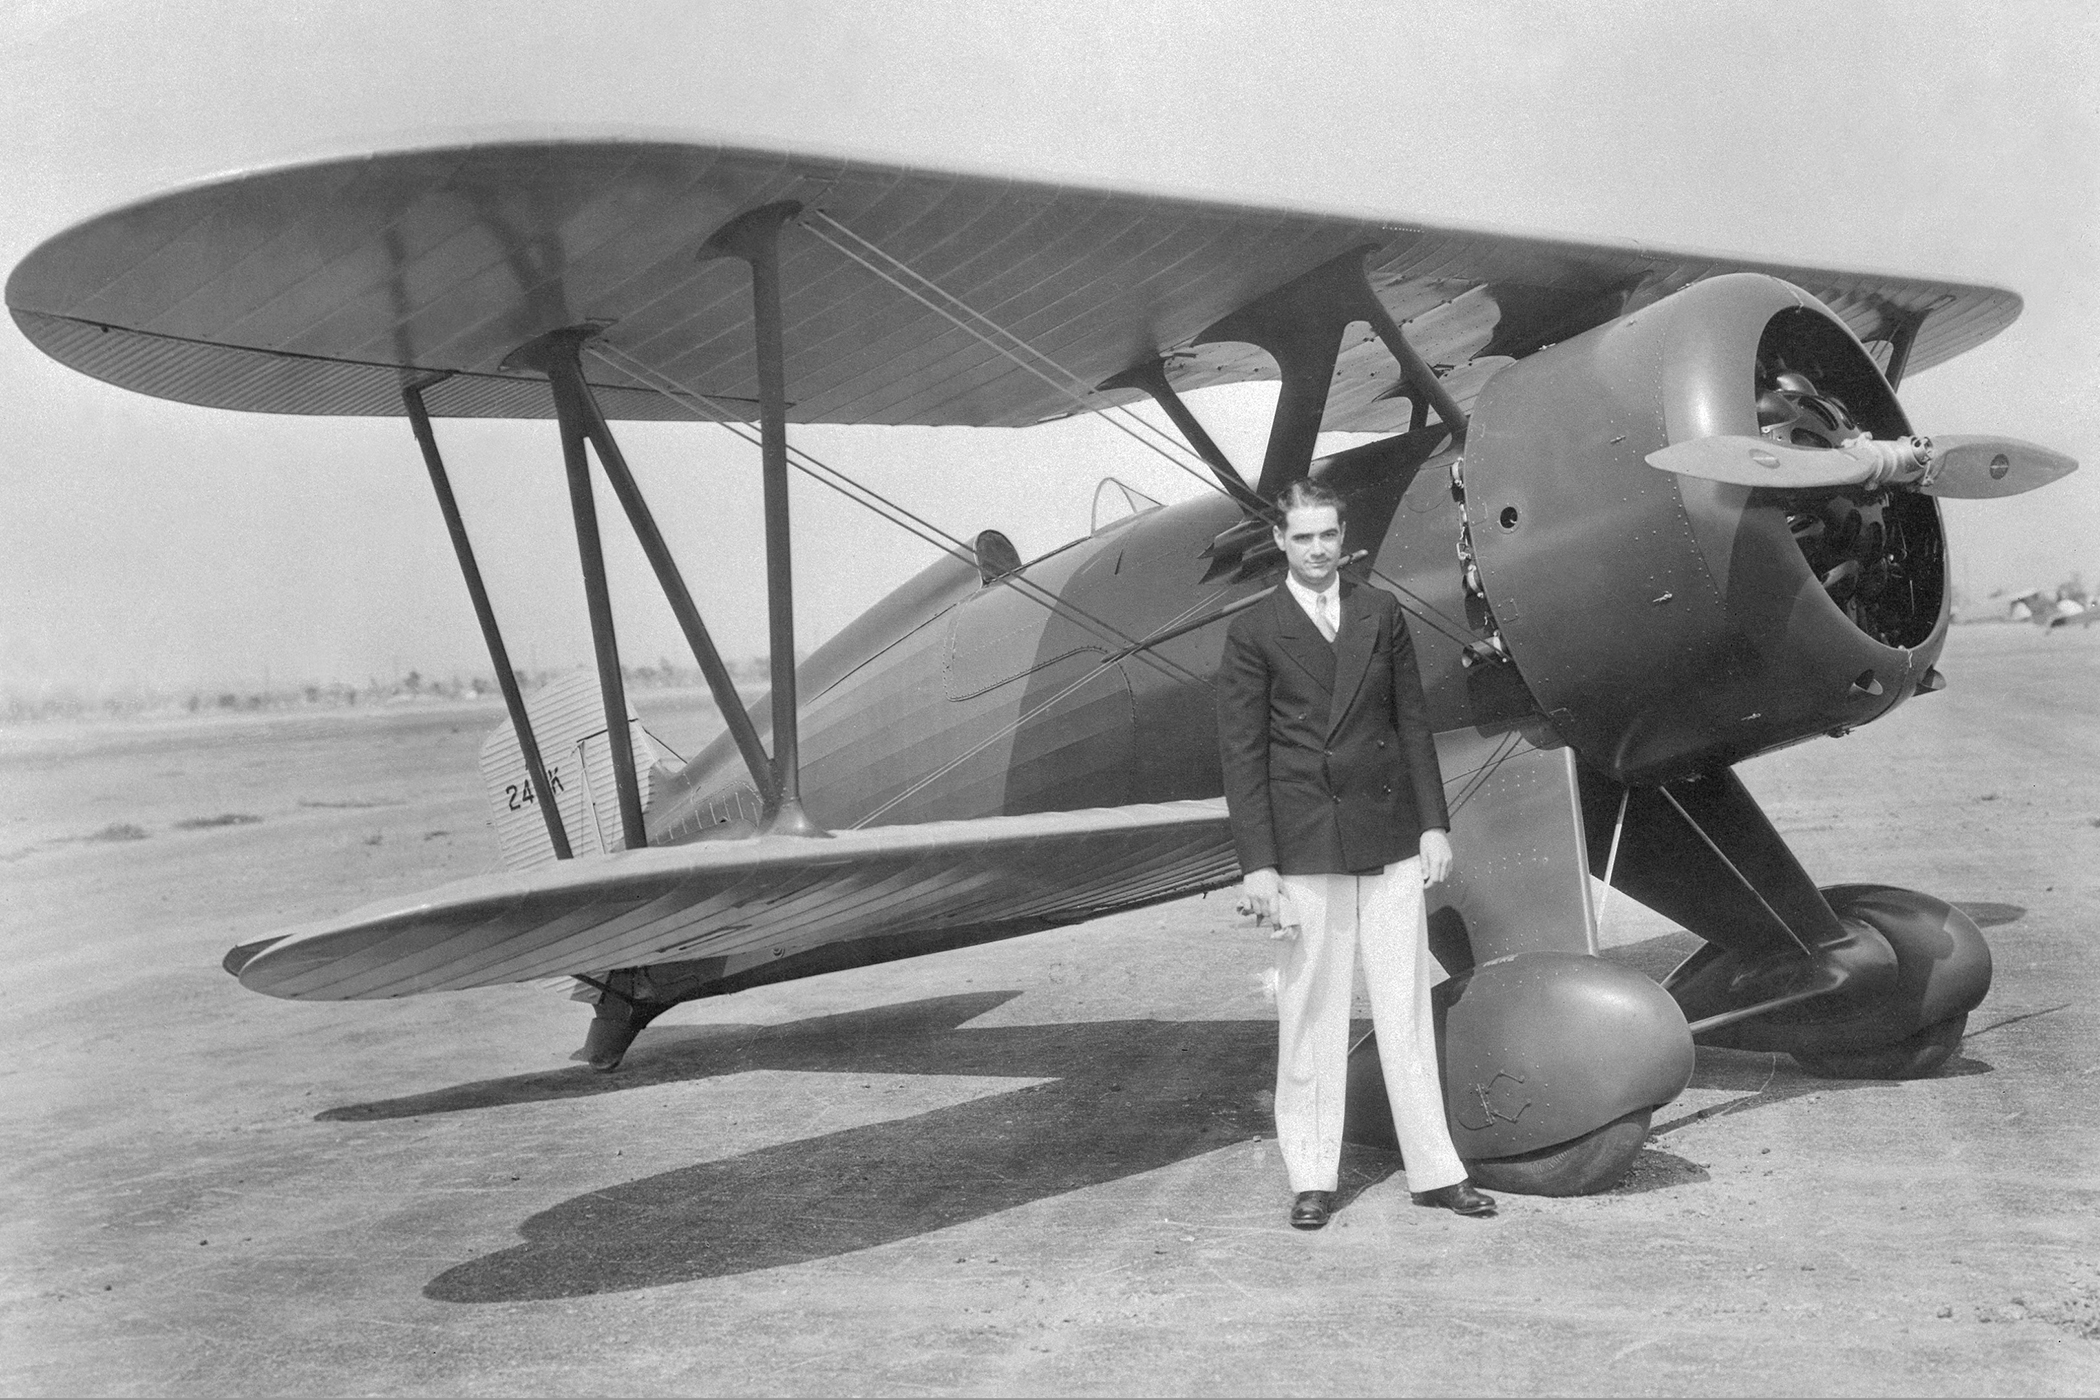 Howard Hughes, motion picture producer, shown after a test hop in his new high powered plane, a Boeing Army pursuit ship. Hughes is said to be the only private individual to own and pilot an Army plane.